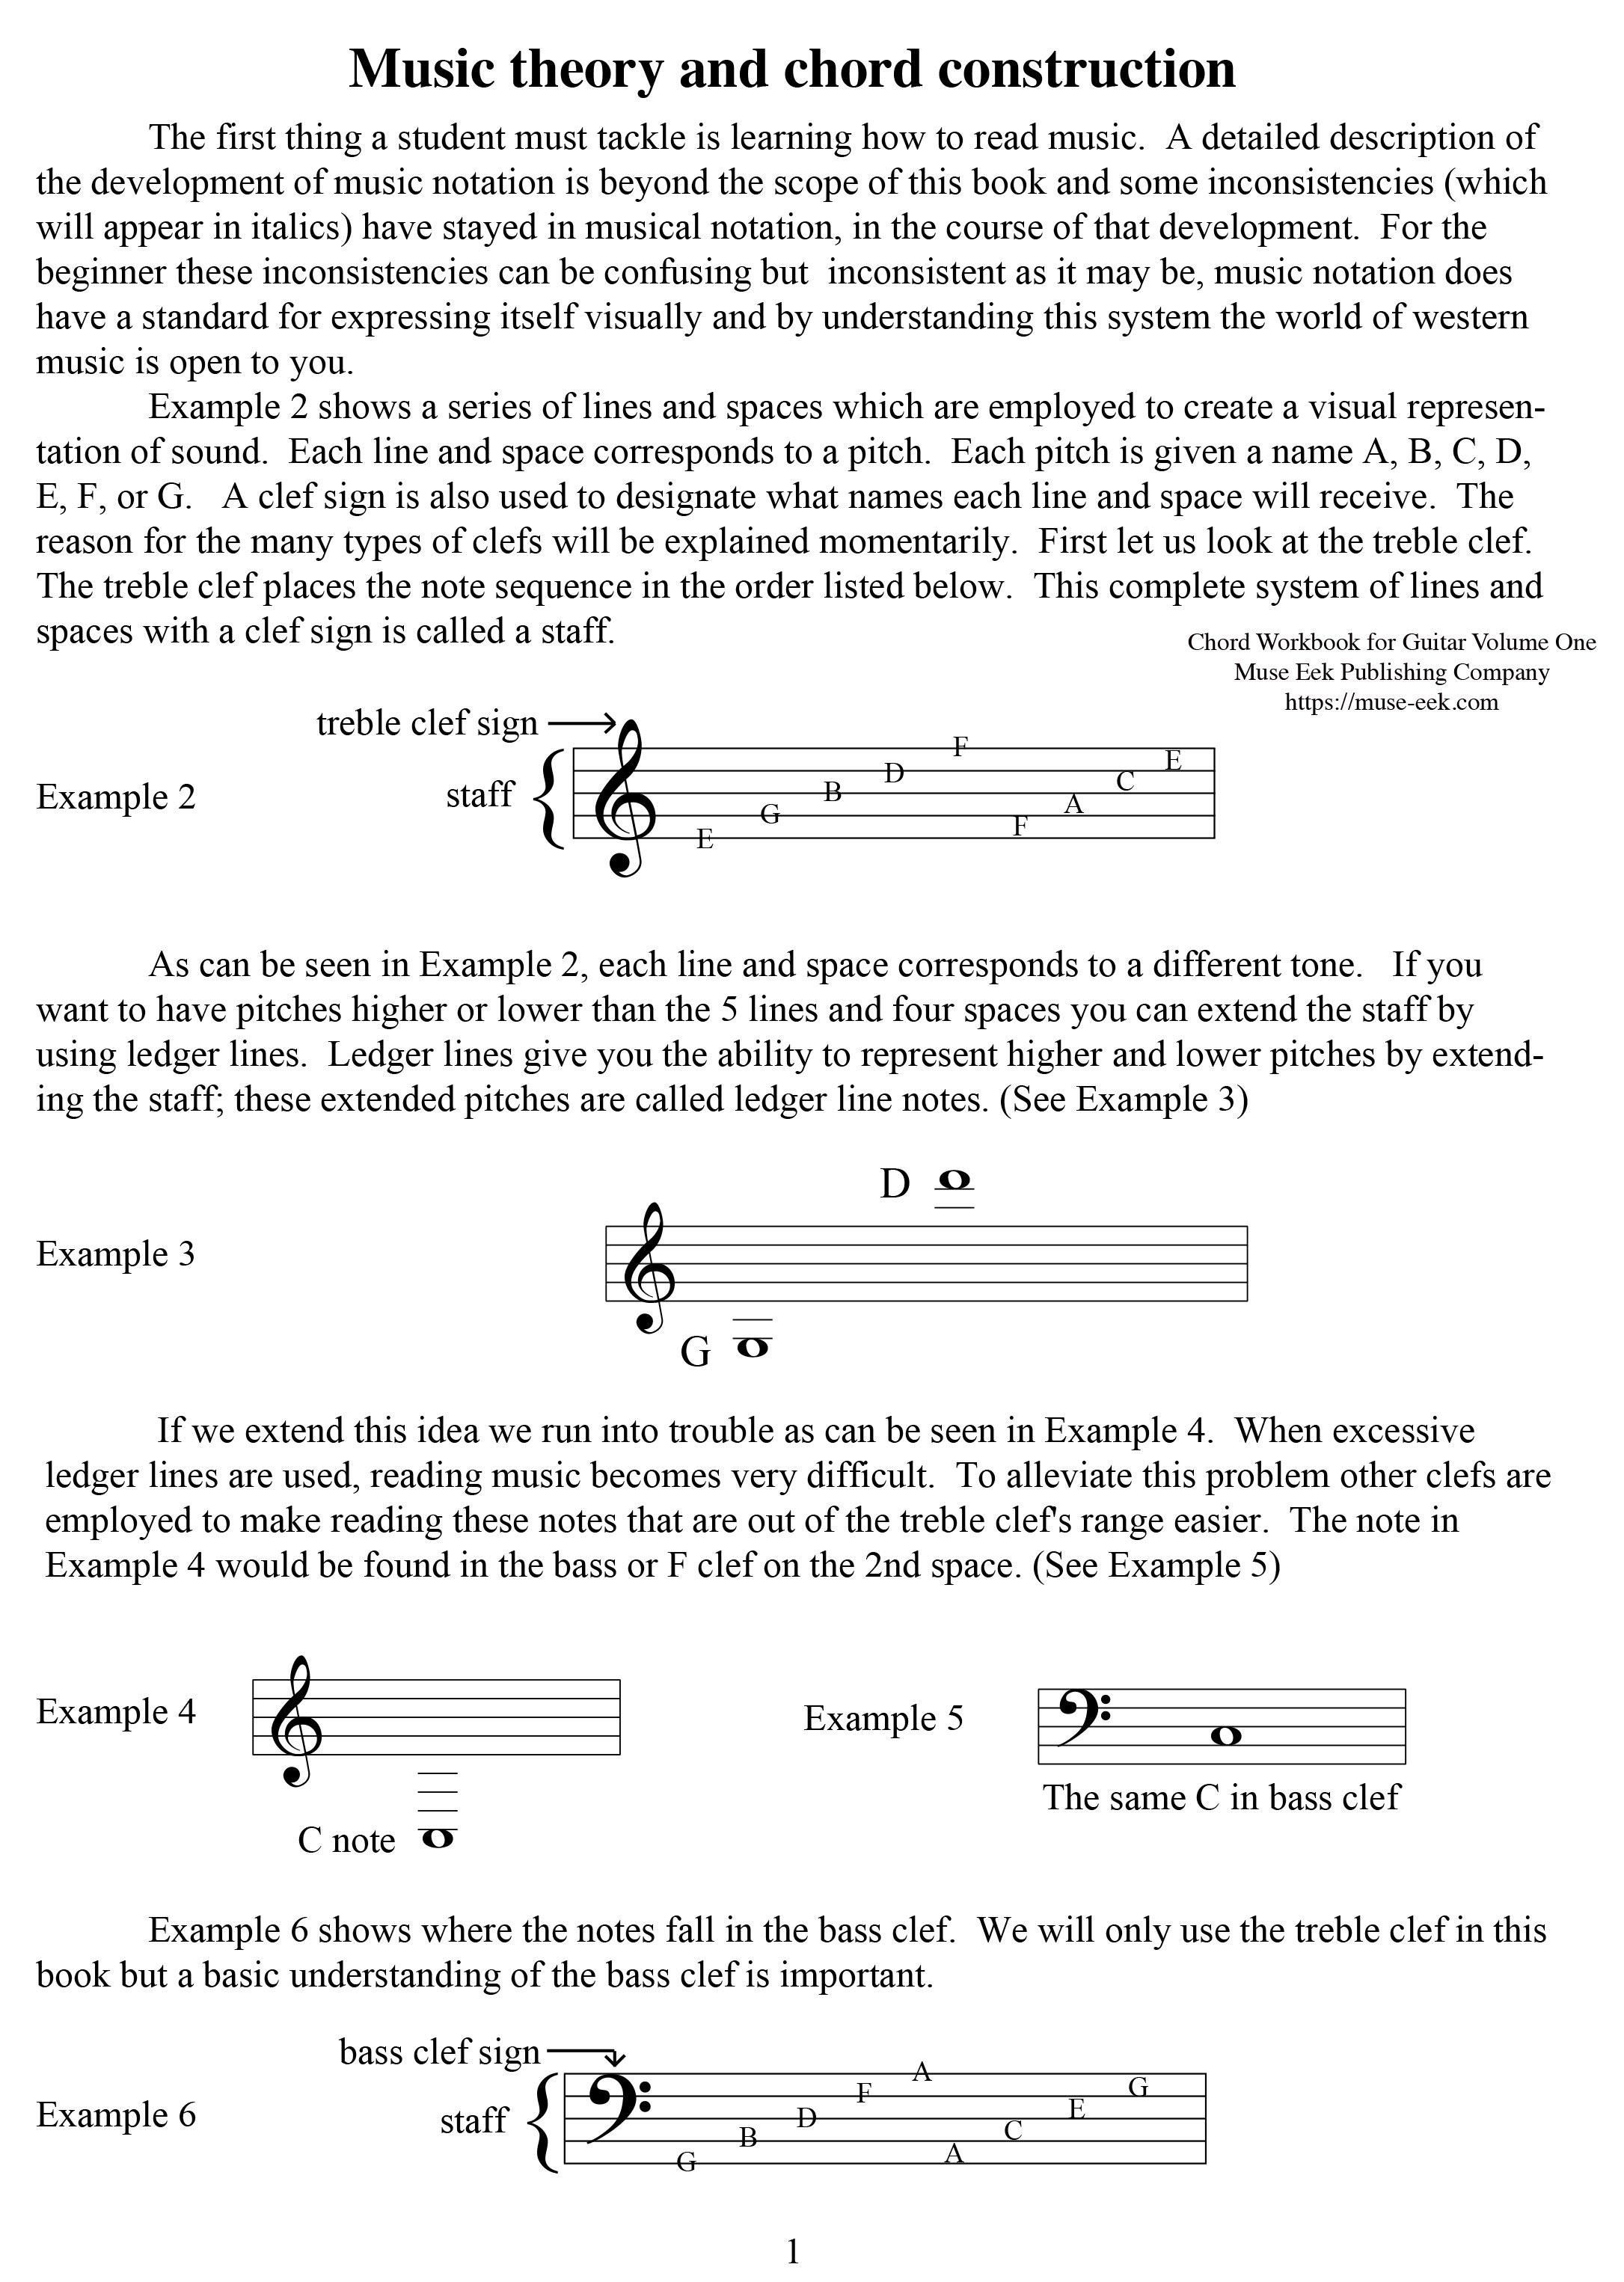 Music-Theory-Chord-Workbook-for-Guitar-V1-Bruce-Arnold-muse-eek, guitar chords, Chord Progressions